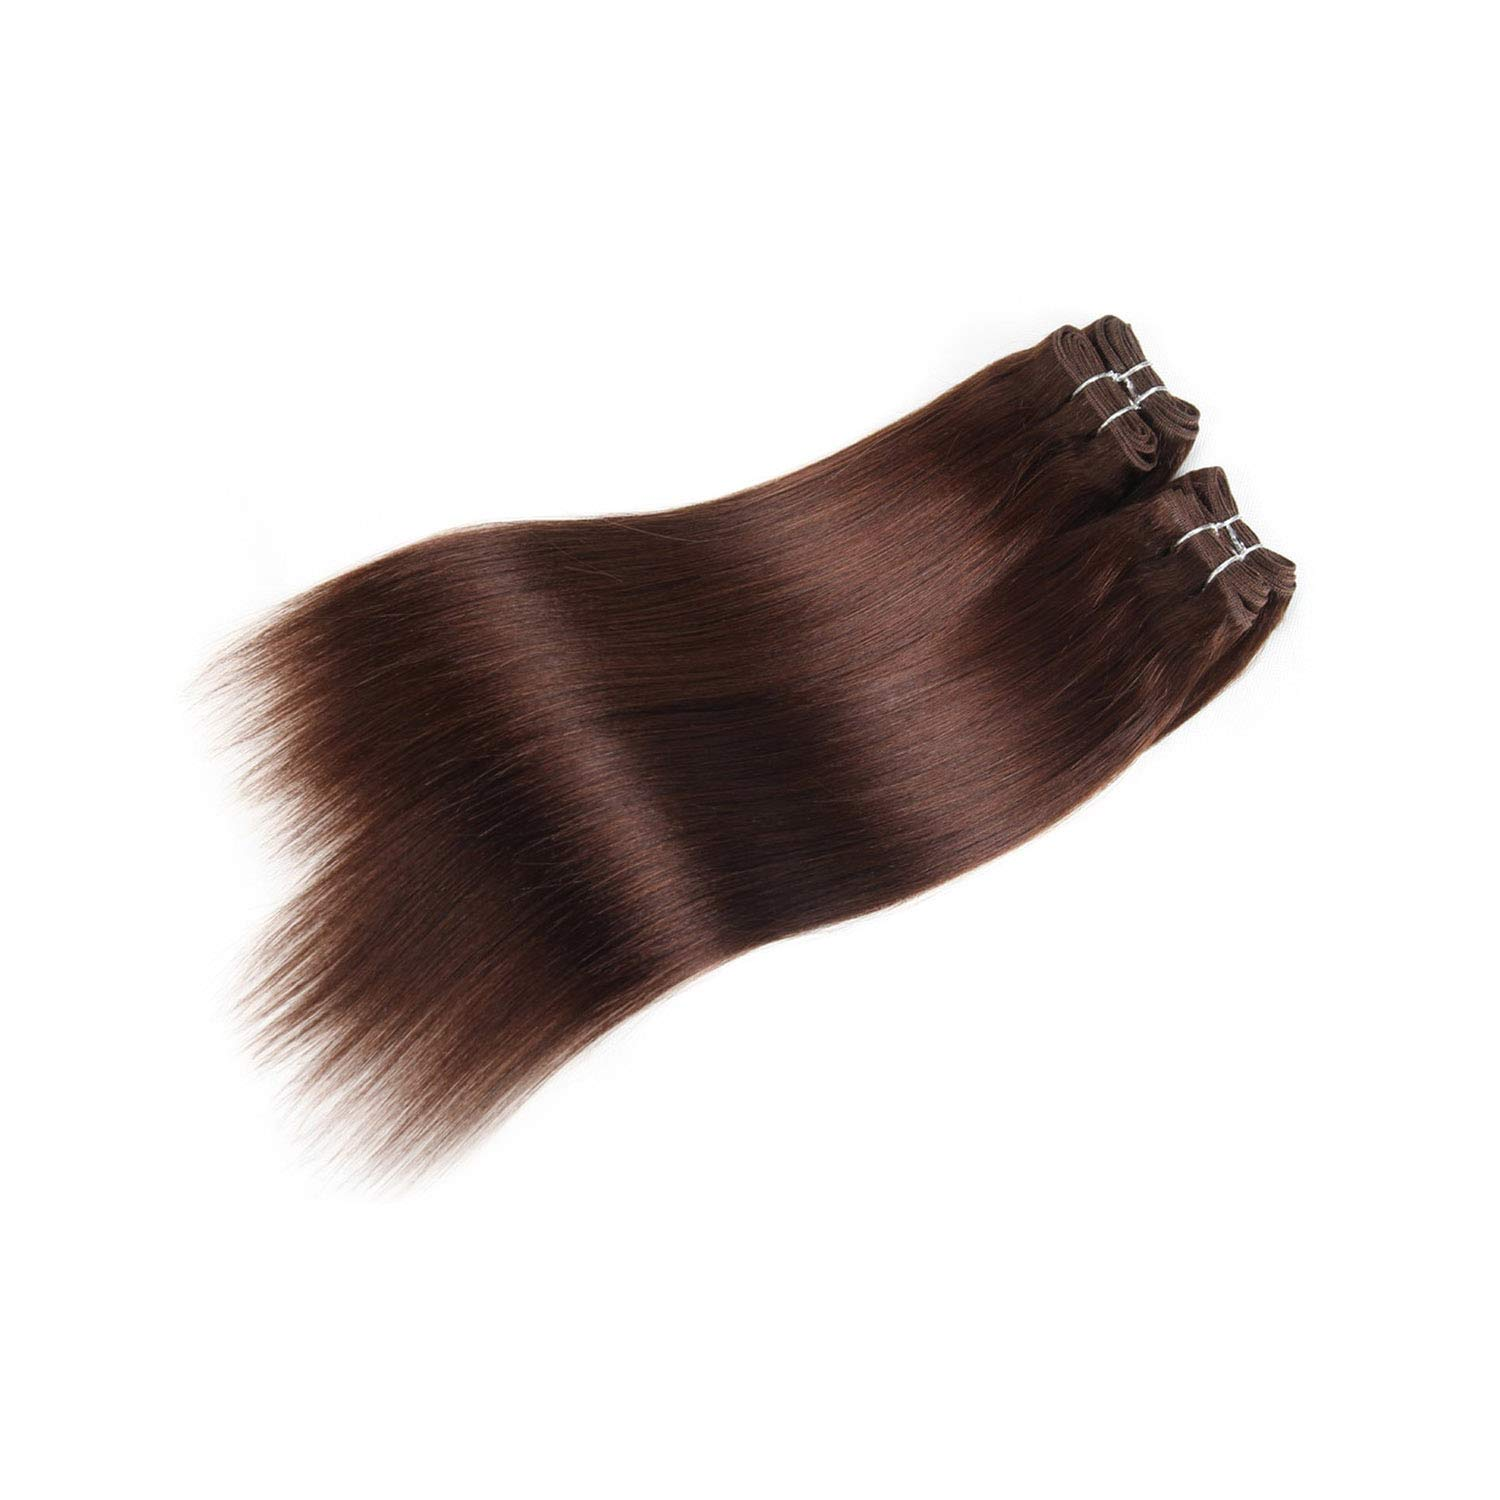 Crystal Grass Brazilian Yaki Straight Human Hair Bundles 4 Bundles Deal 190G 1 Pack Red Hair Non Remy 1B 2 4 99J Burg Hair Extension,8 8 10 10,#4 by Crystal Grass-Hair